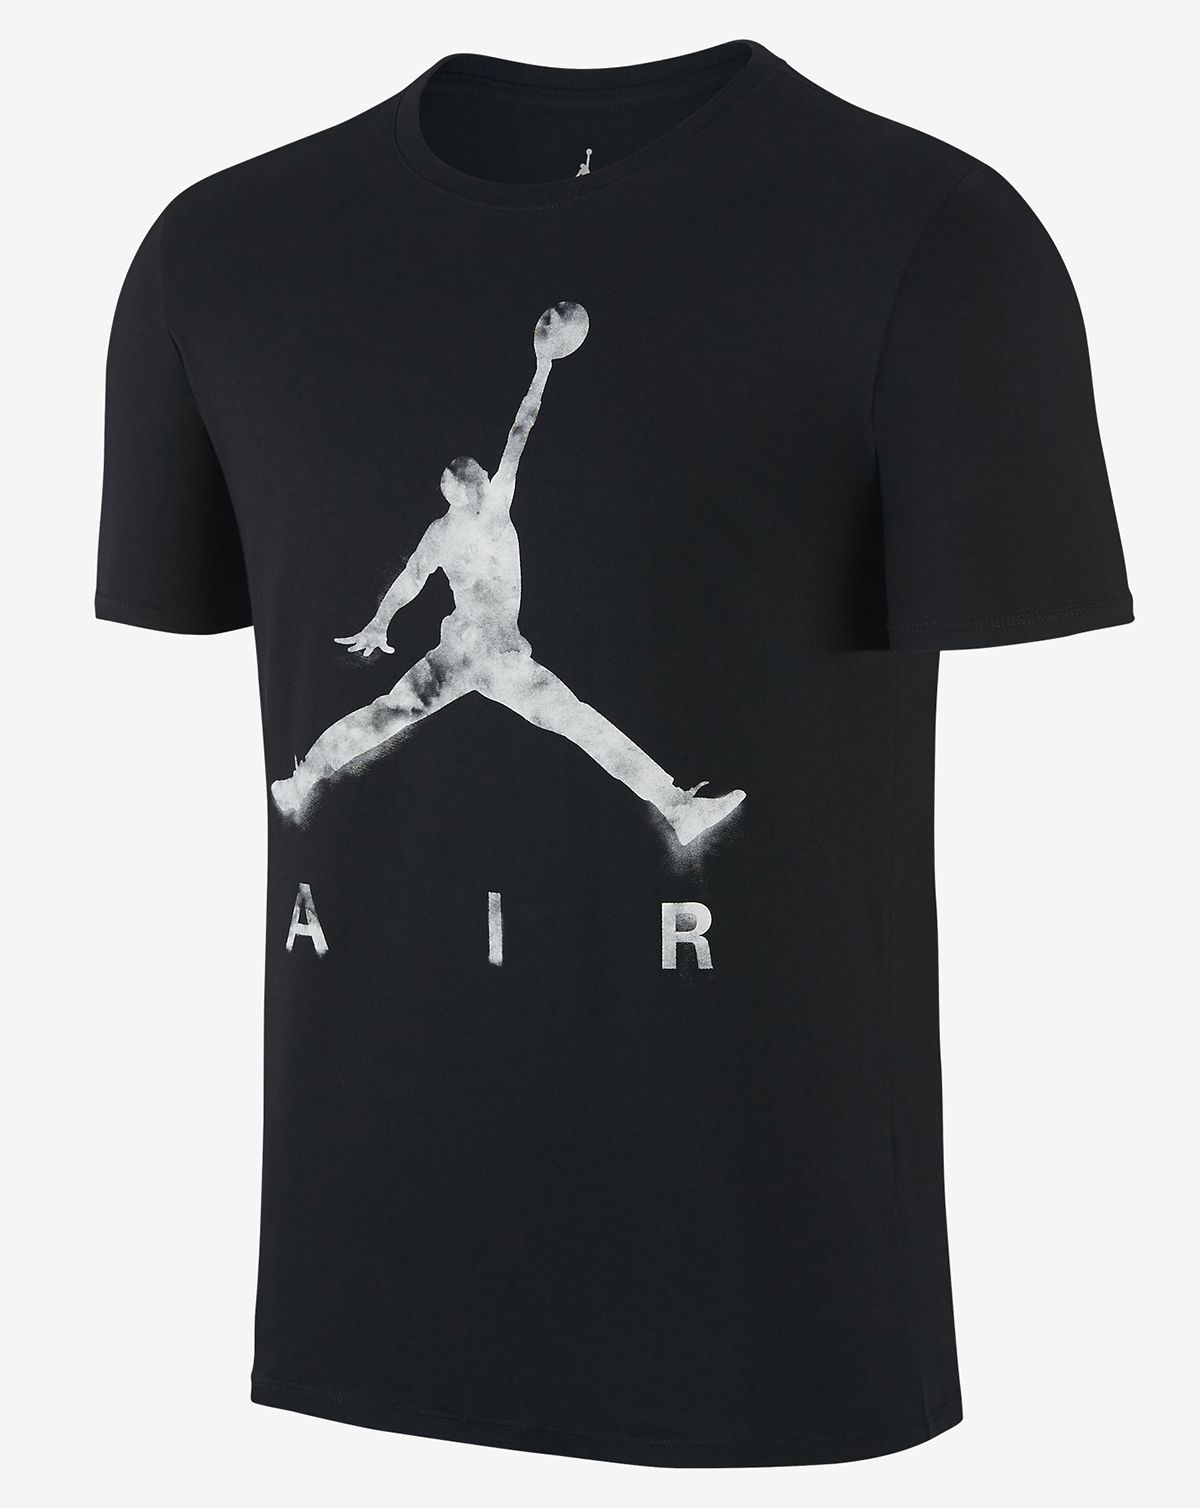 5fc2426fba1c04 Jordan Jumpman Air Dreams Men s T-Shirt  Black White